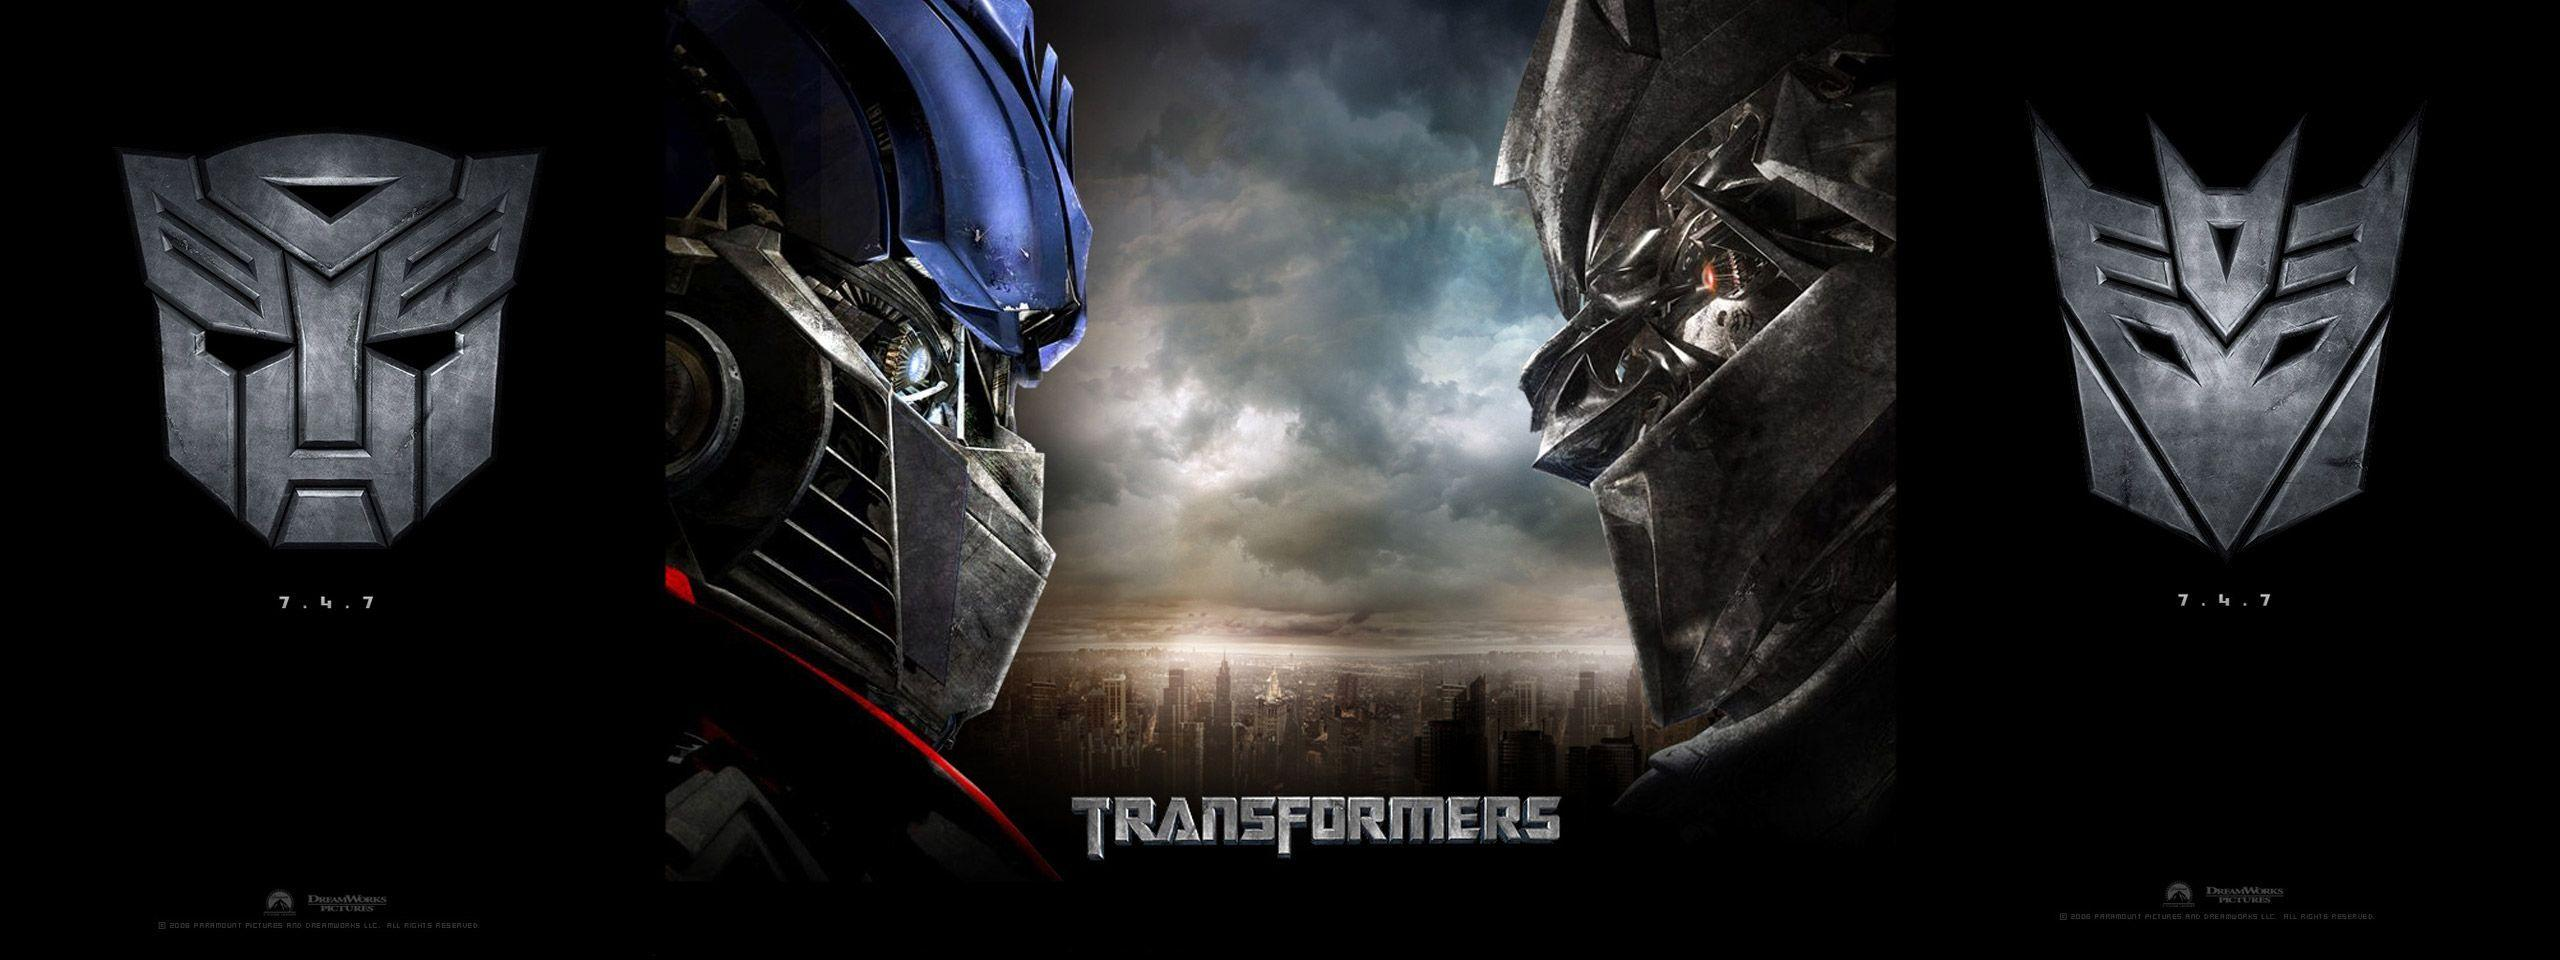 Transformers Desktop Wallpapers - Wallpaper Cave